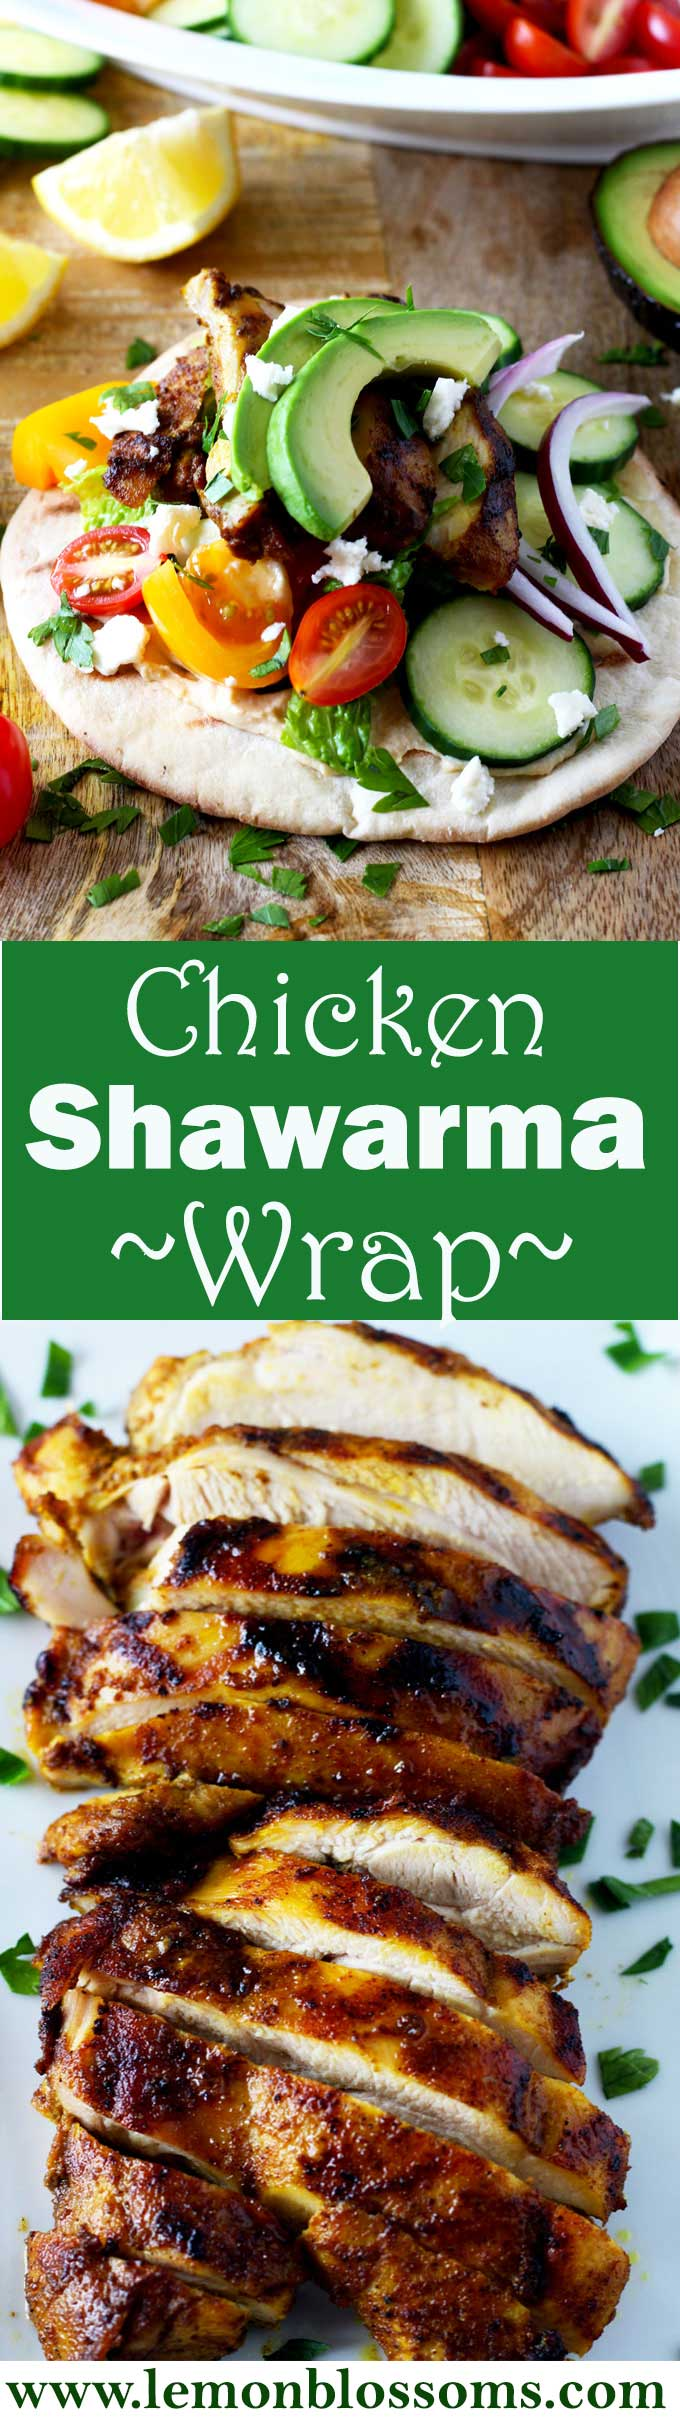 Enjoy this easy homemade version of Chicken Shawarma Wrap, a Middle Easter favorite. The spice-marinated chicken is cooked in the oven or on the grill and wrapped on a pita bread. Add hummus, and top it with cucumbers, tomatoes, onions, avocado, feta cheese and more!